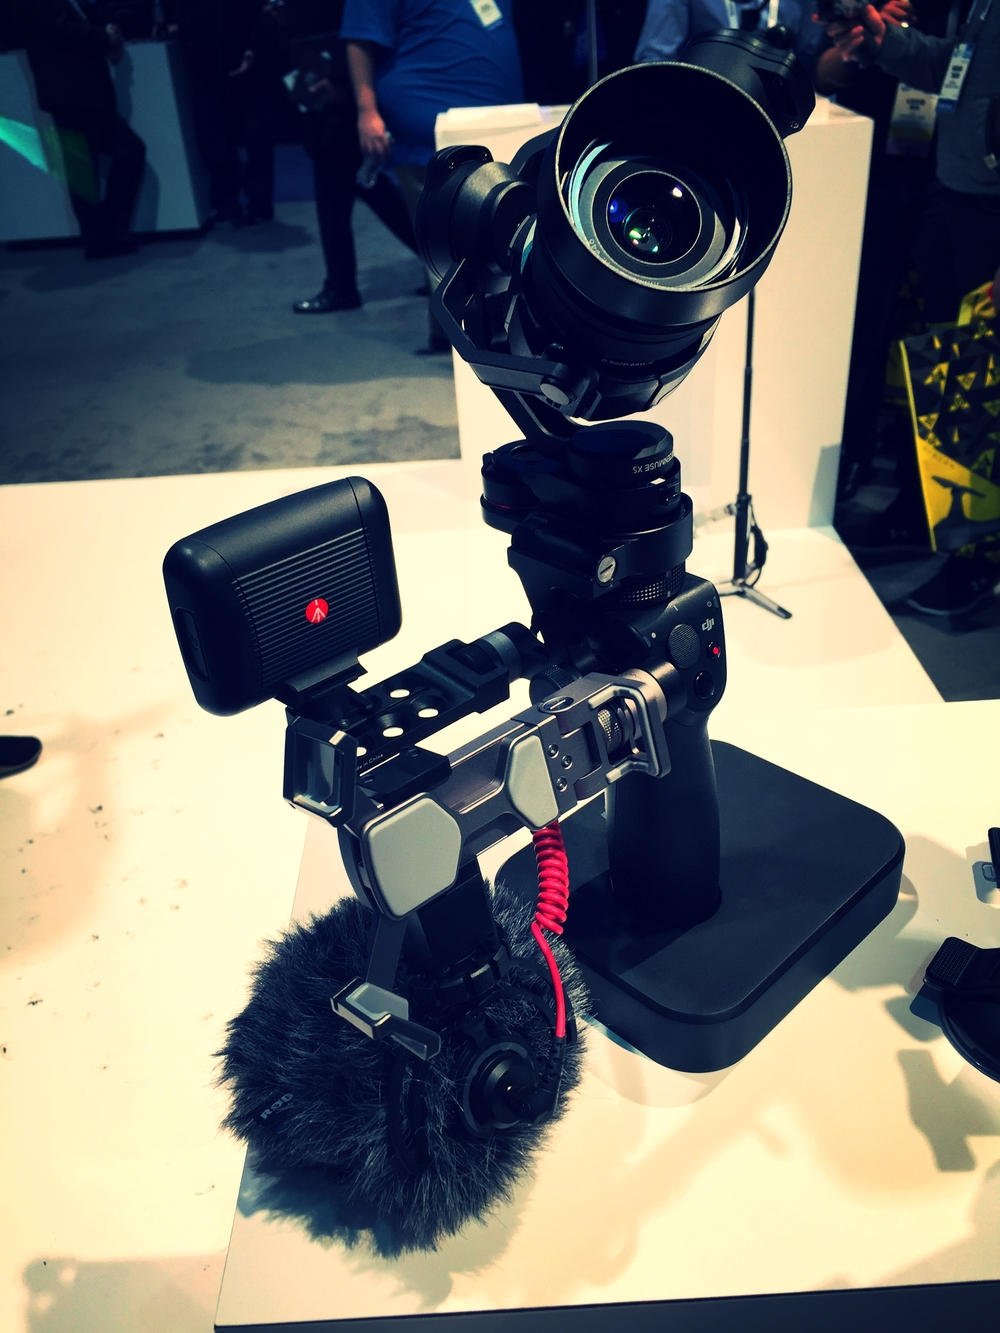 DJI OSMO with the Zenmuse X5 camera and additional accessories. Available through the  DJI Website .